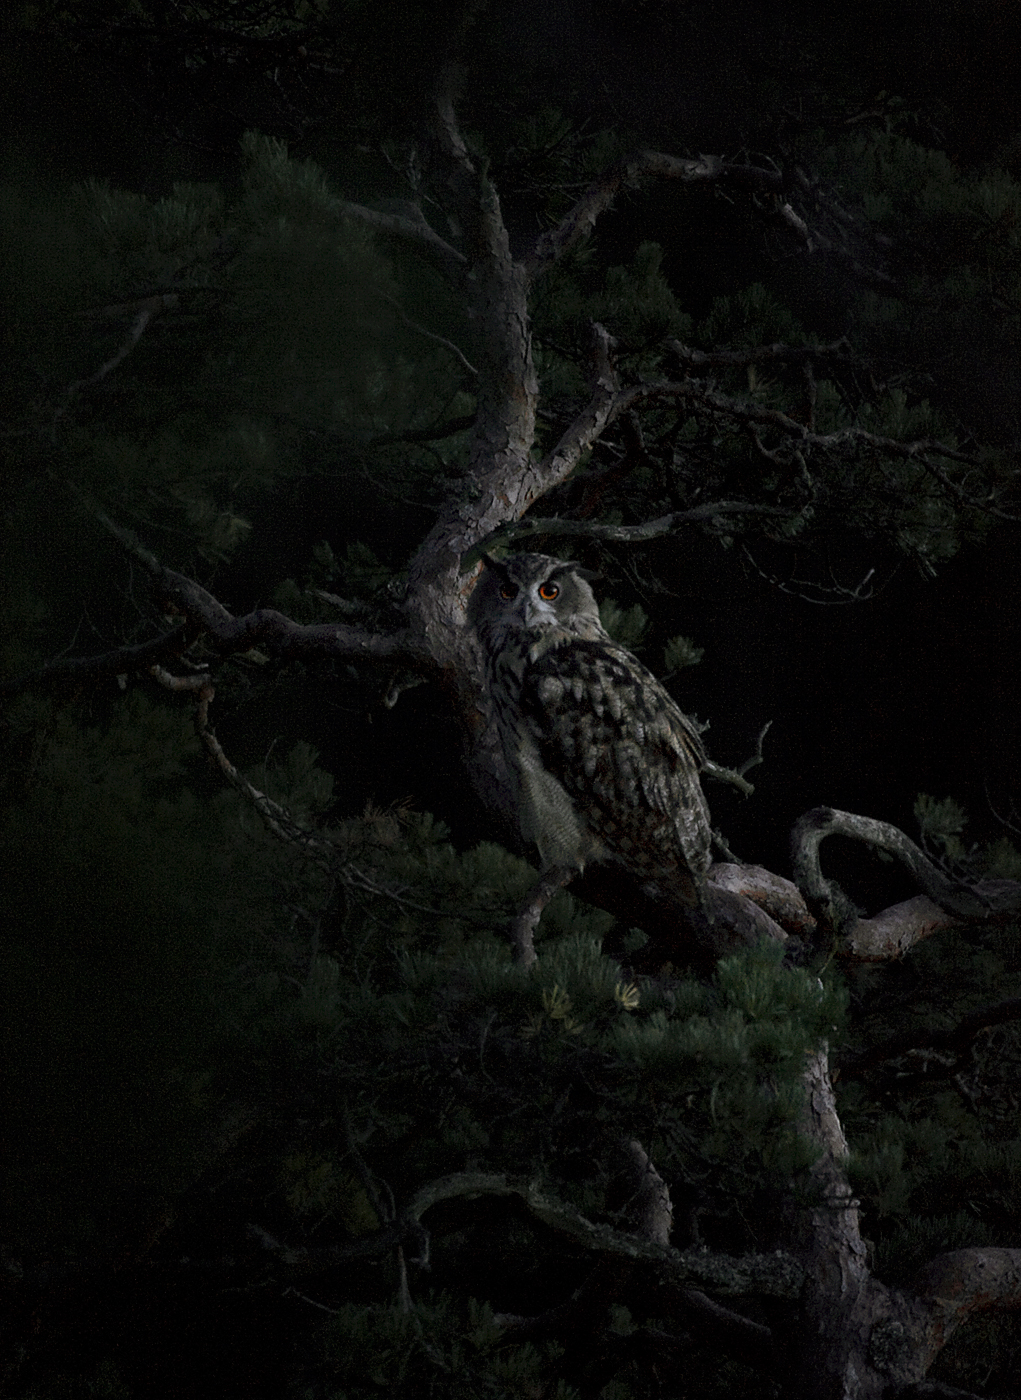 Eagle of Darkness